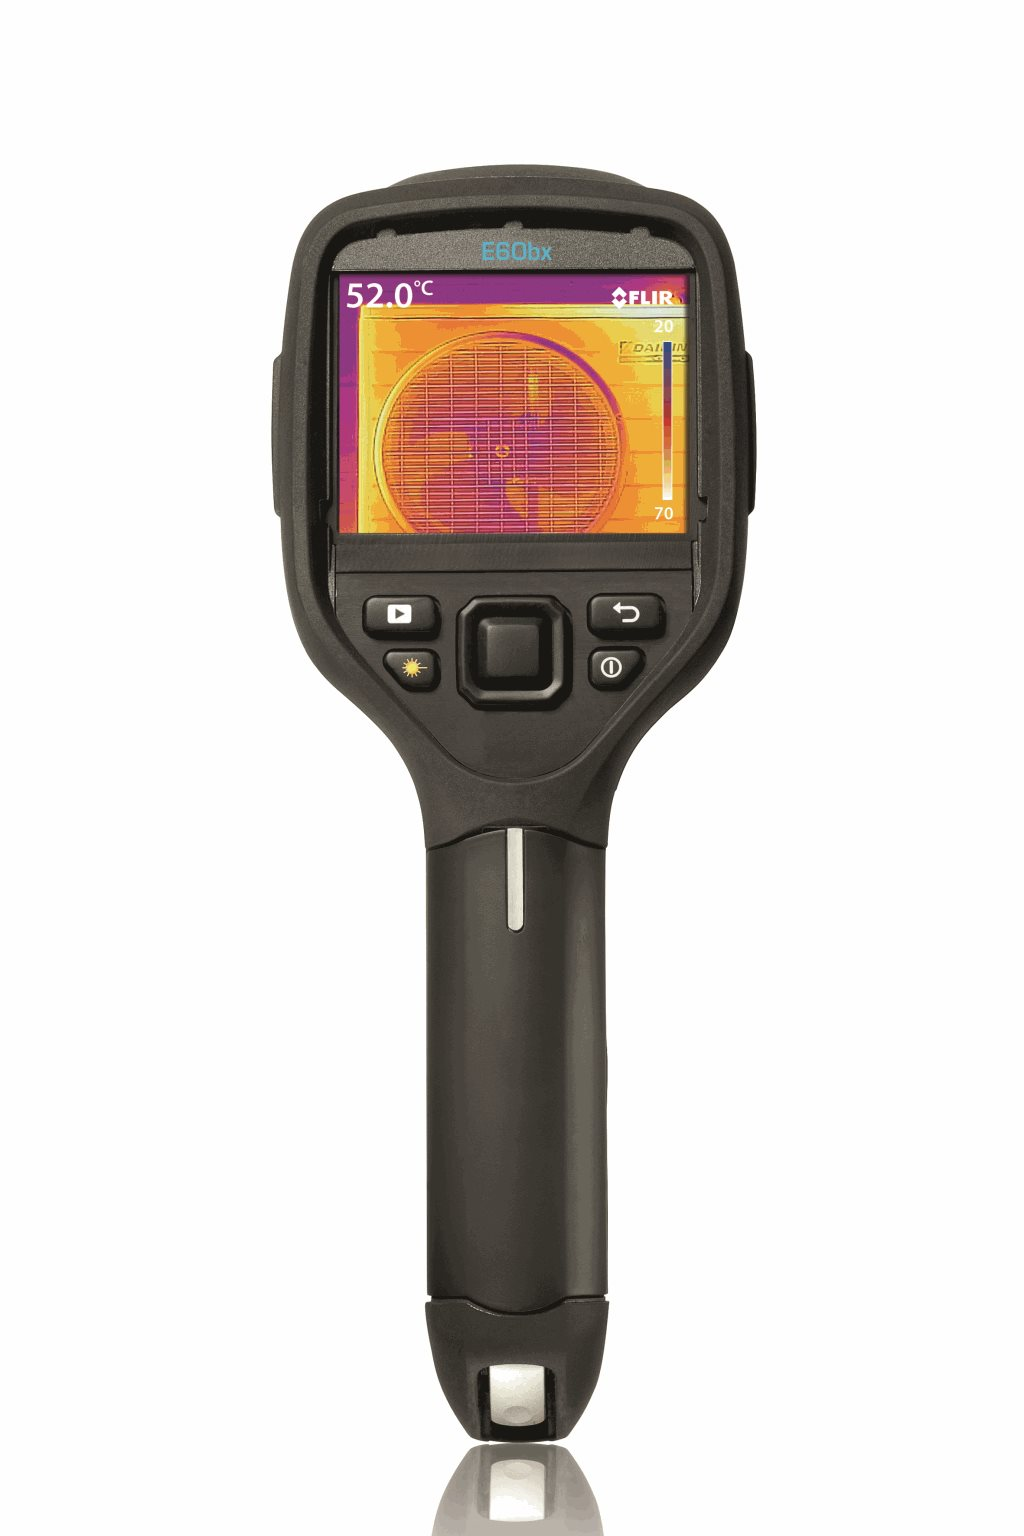 Exx- Series Thermal Imaging Cameras for Industrial Professionals